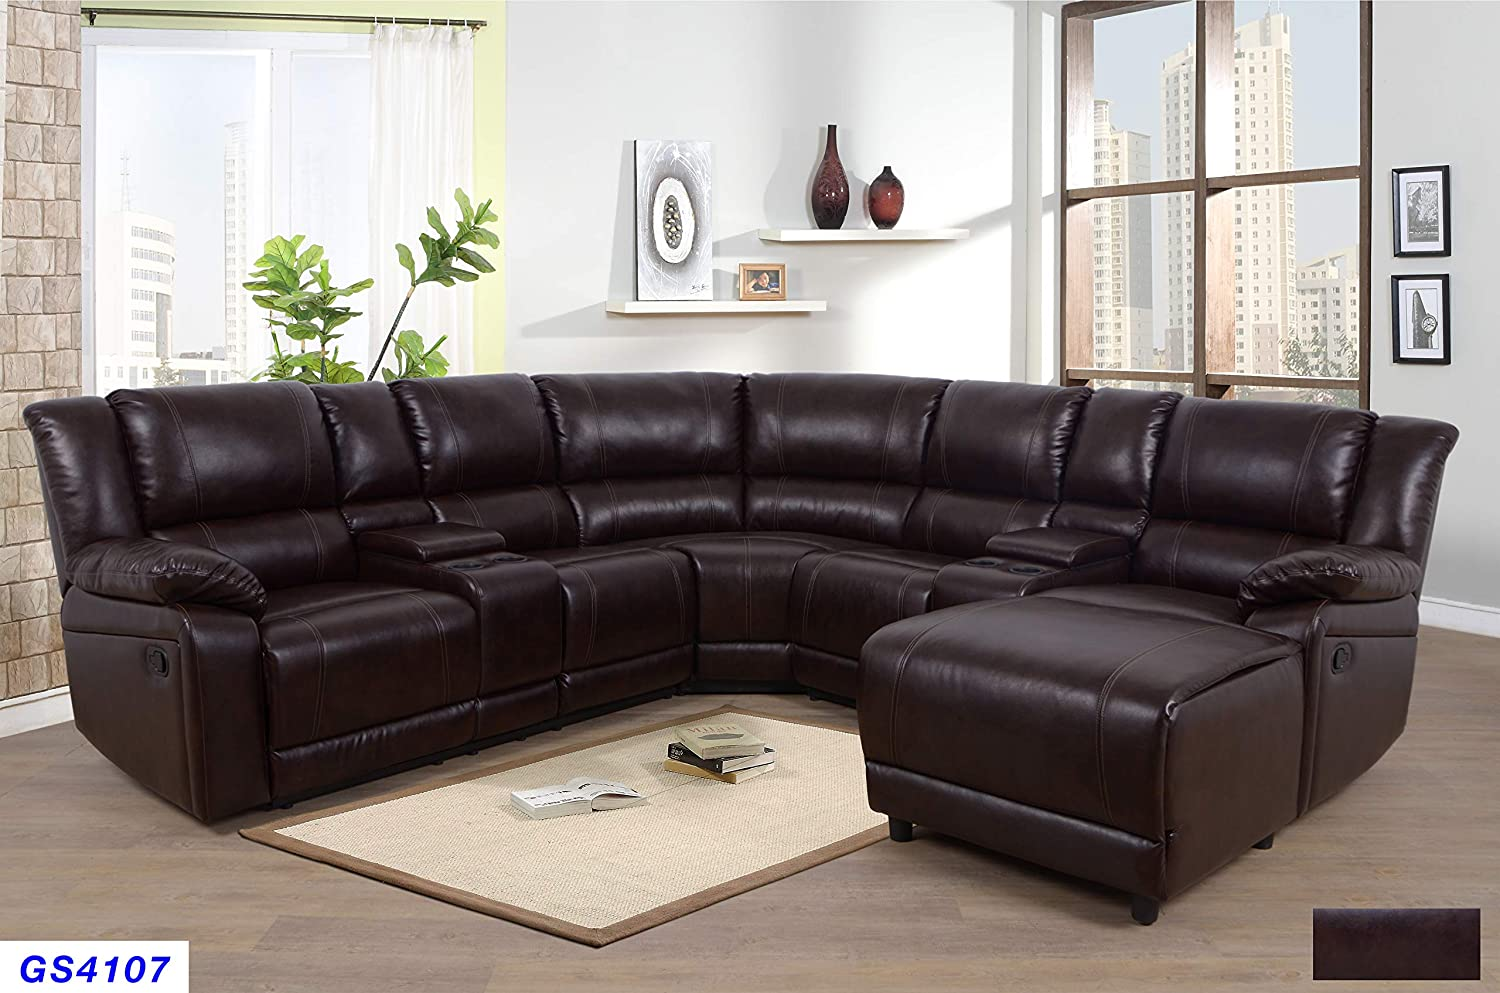 Lifestyle Furniture 5-Pieces Recliner Sectional Sofa Set with Push Back  Chaise,2 Cup Holder Consoles with Lift up Storage,Brown Bonded ...